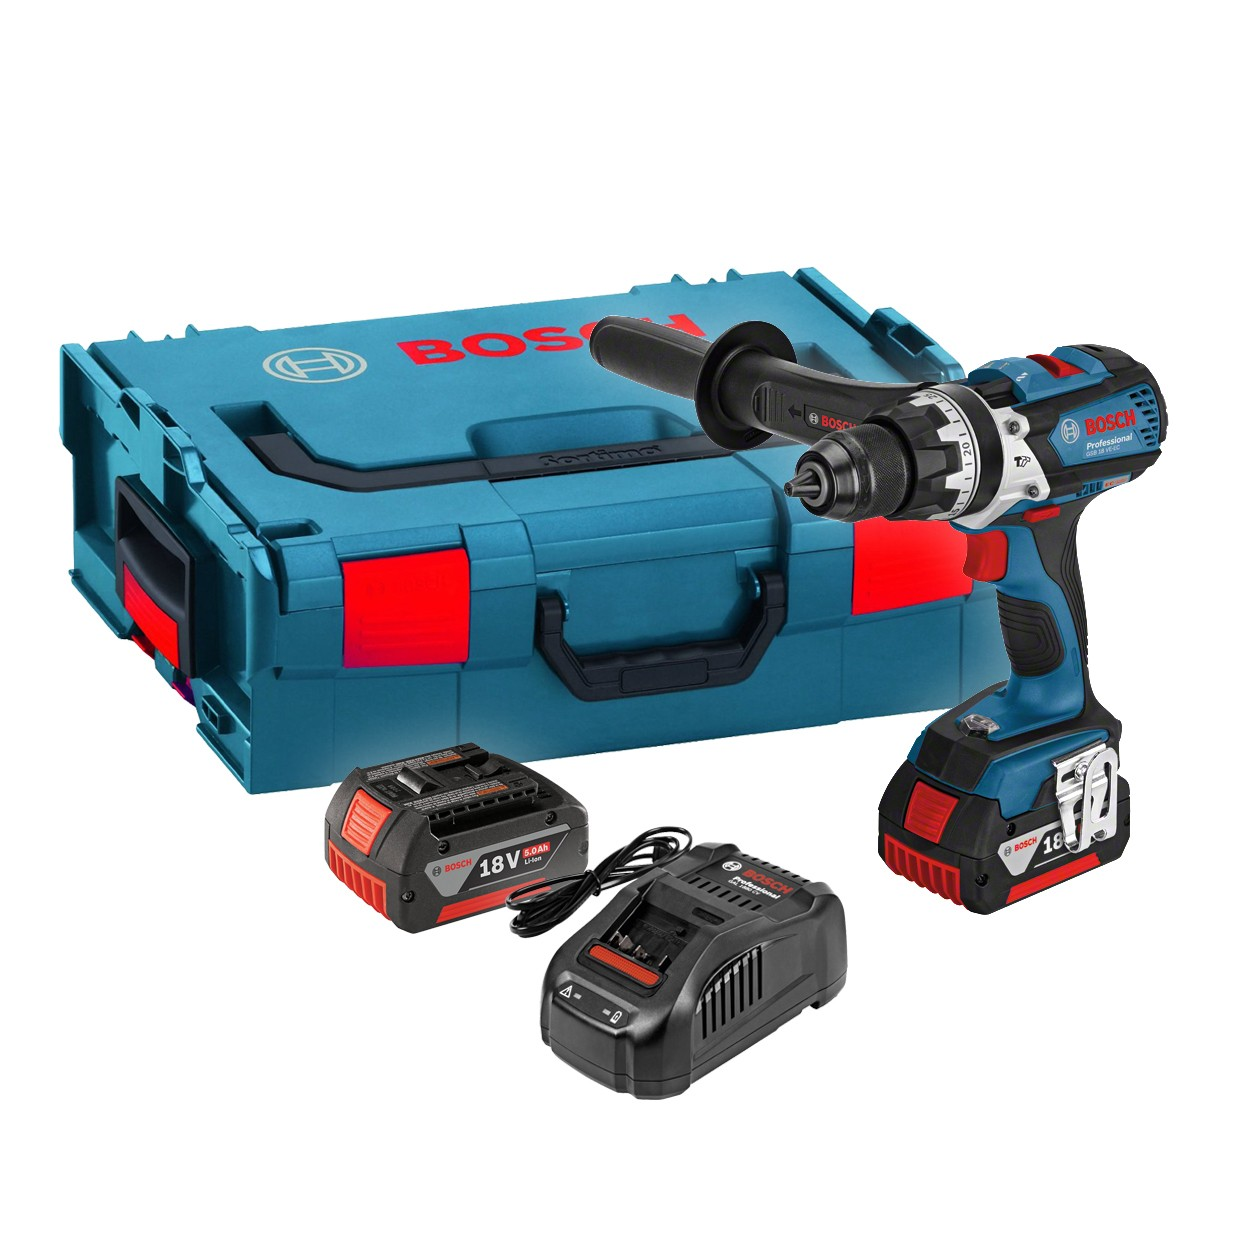 Bosch GSB 18 VE-EC RS Brushless Combi Drill inc 2x 5.0Ah Batts in L-Boxx 06019F1372